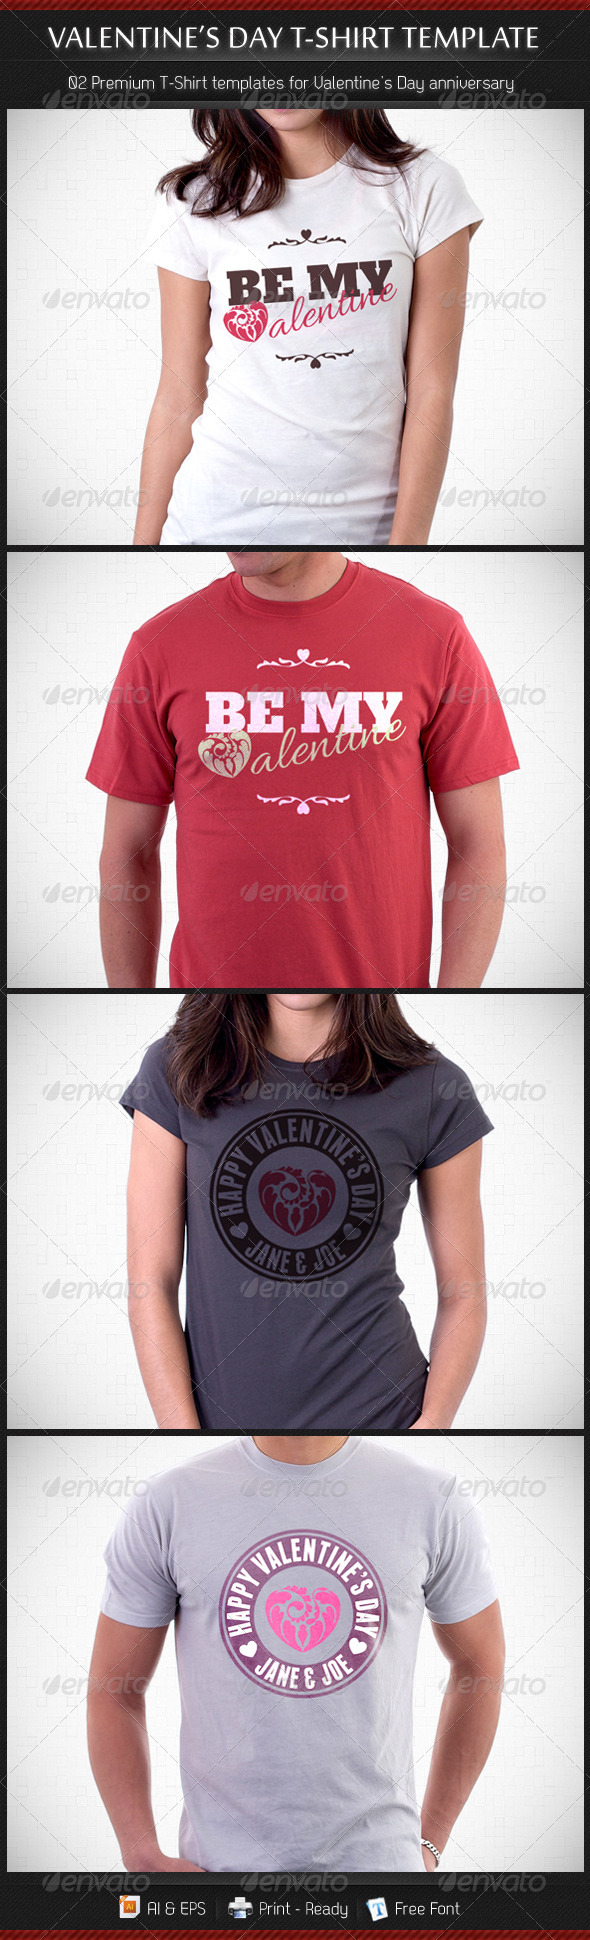 GraphicRiver Valentine's Day T-shirt Template 3942515